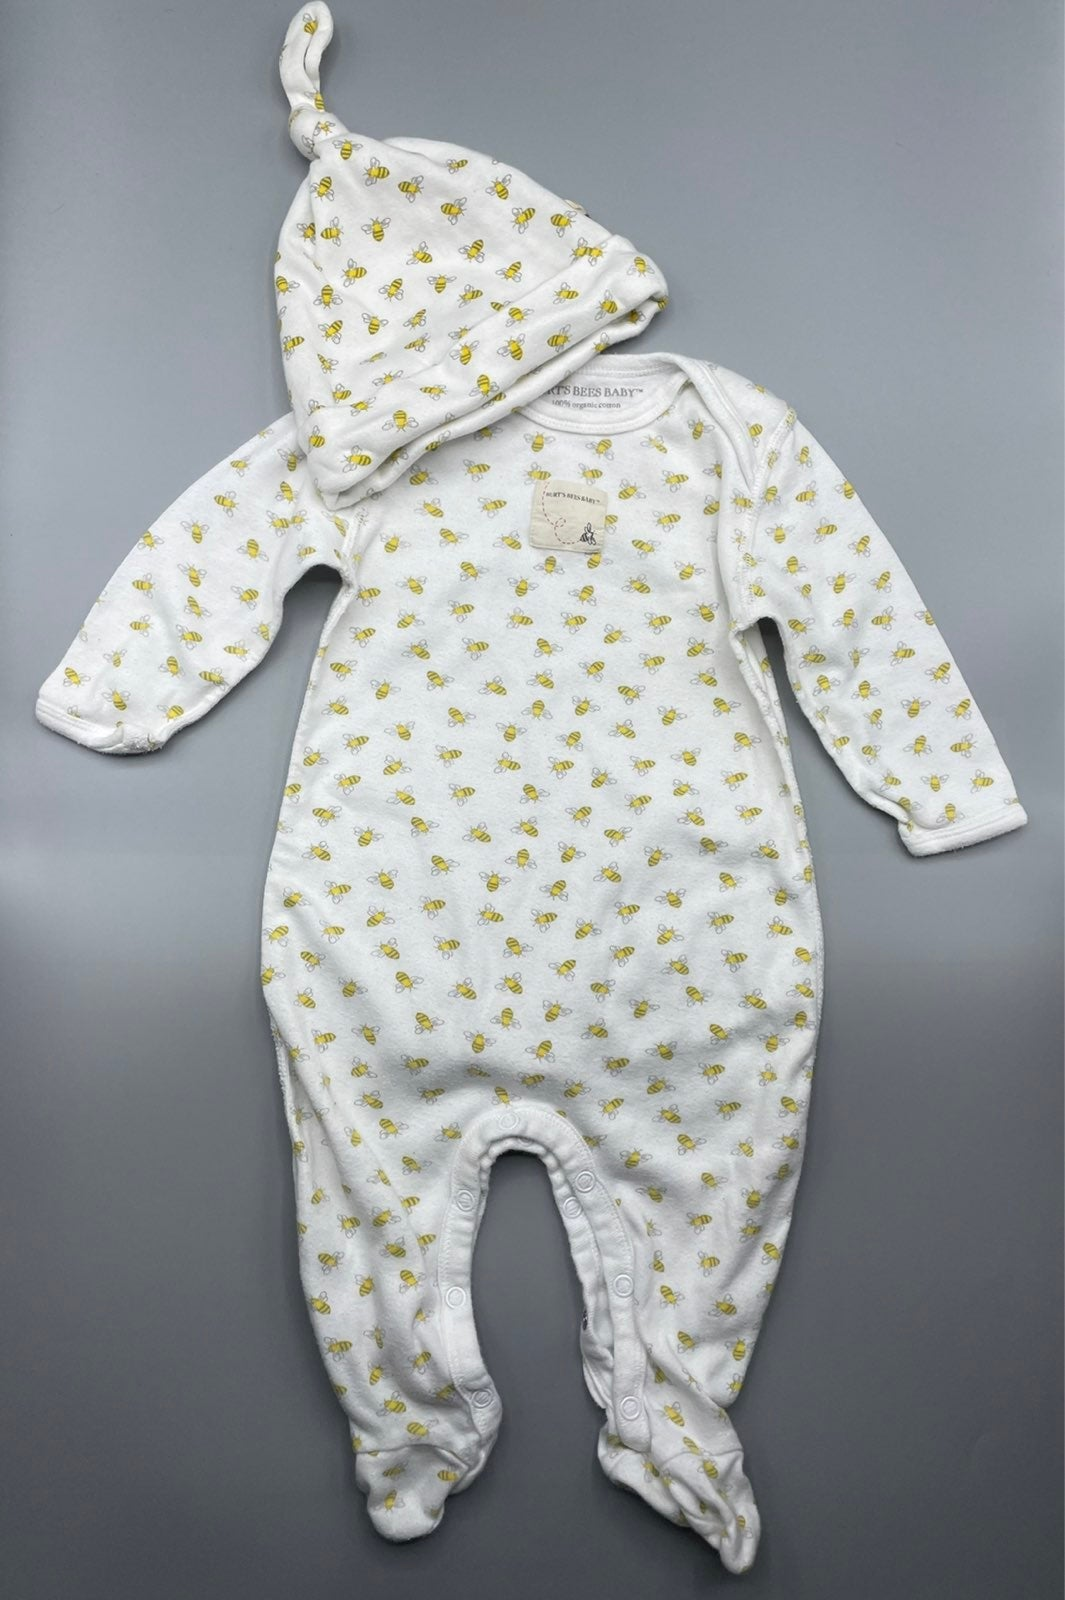 6-9m Burts Bees Baby Bee PJs and Hat